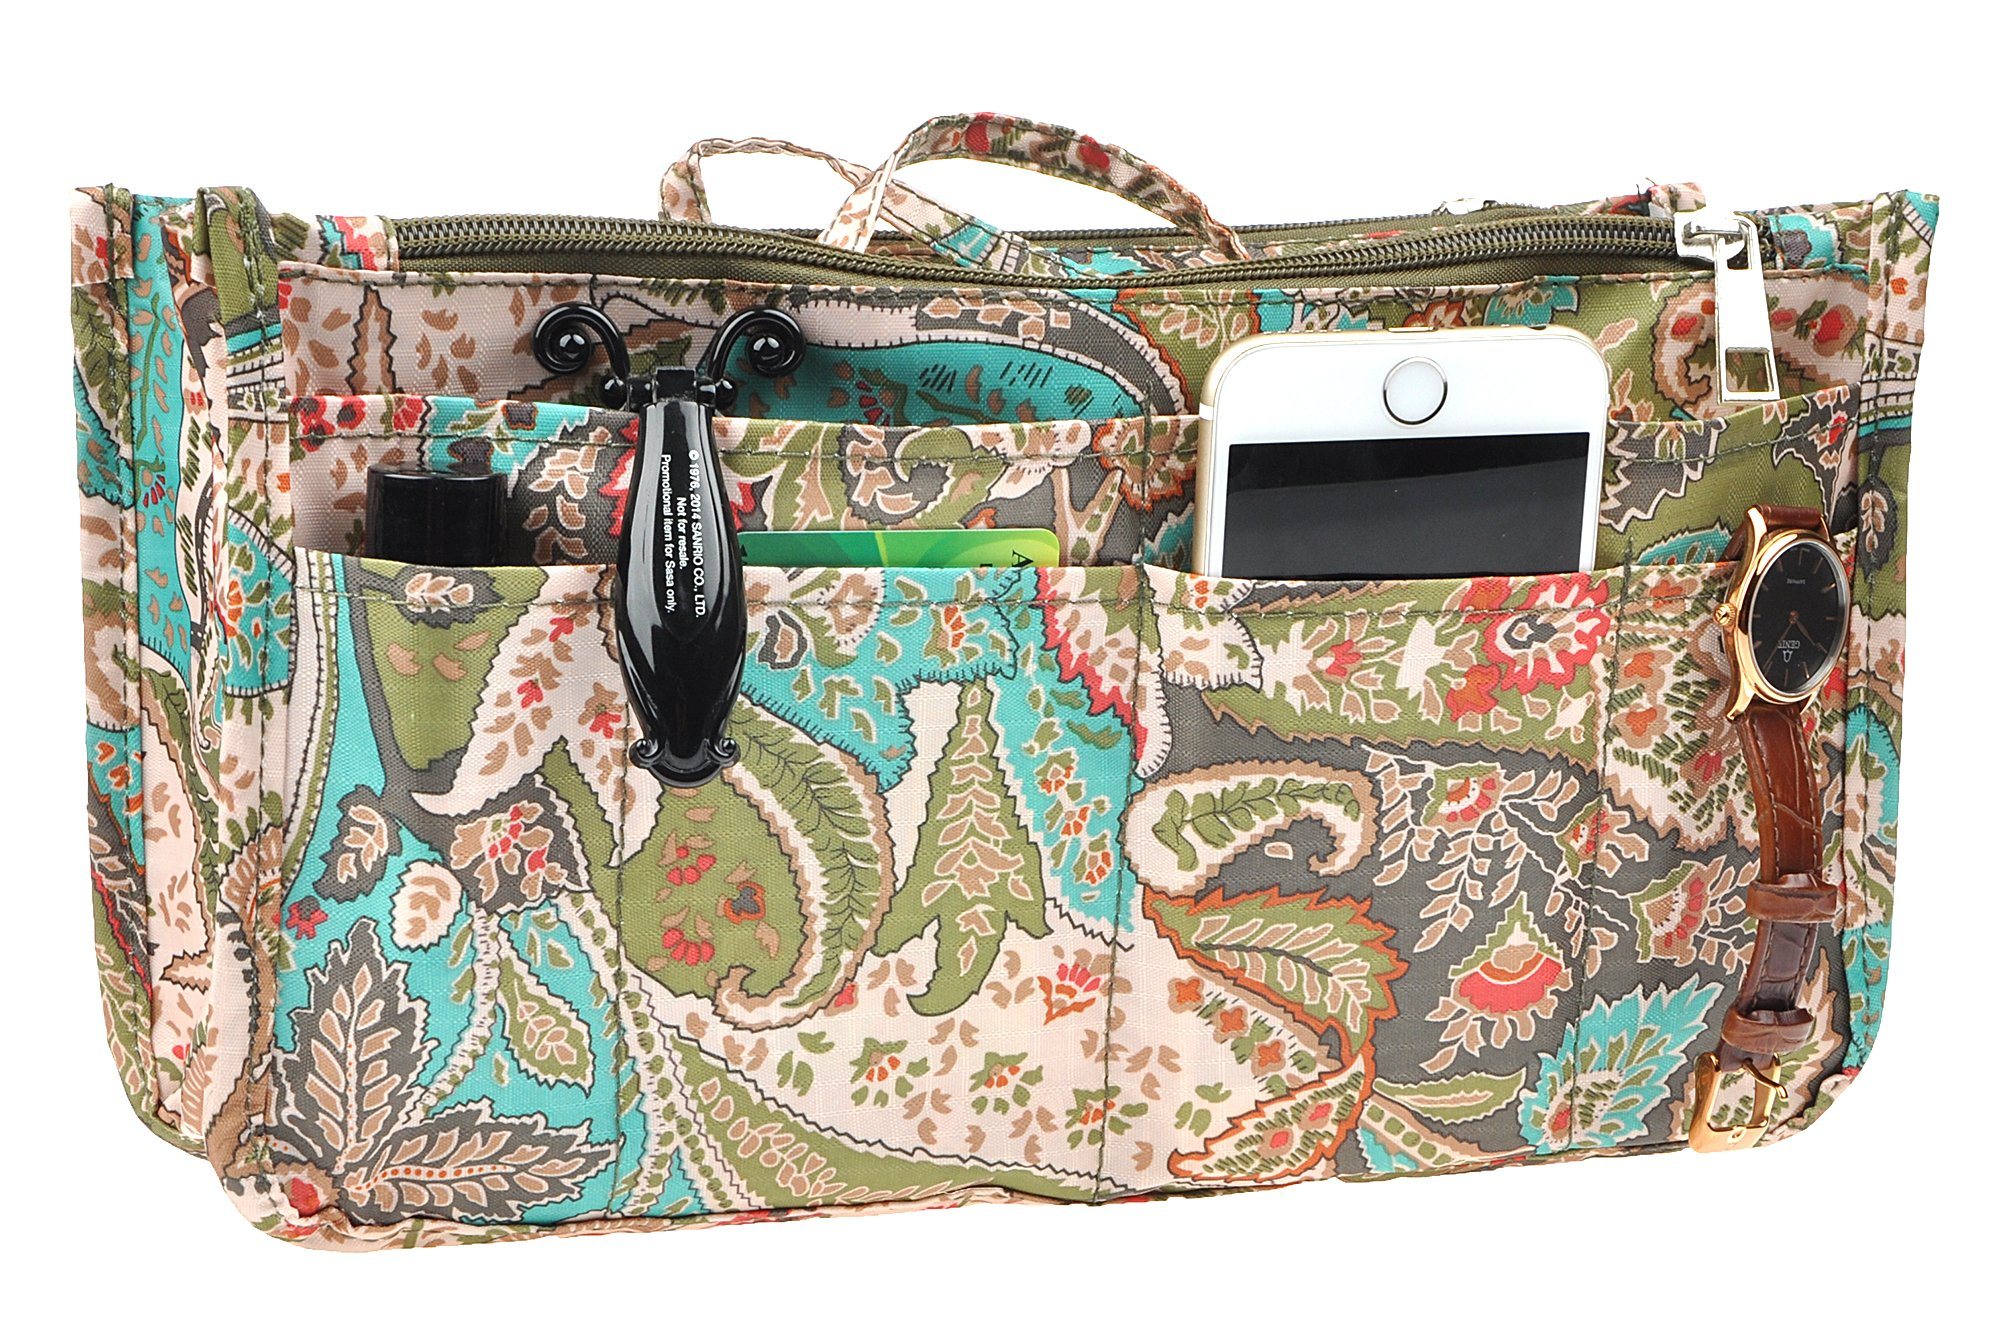 Vercord Printed Purse Handbag Tote Insert Organizer 13 Pockets With Zipper and Handles 2 Size, Peacock Flowers L